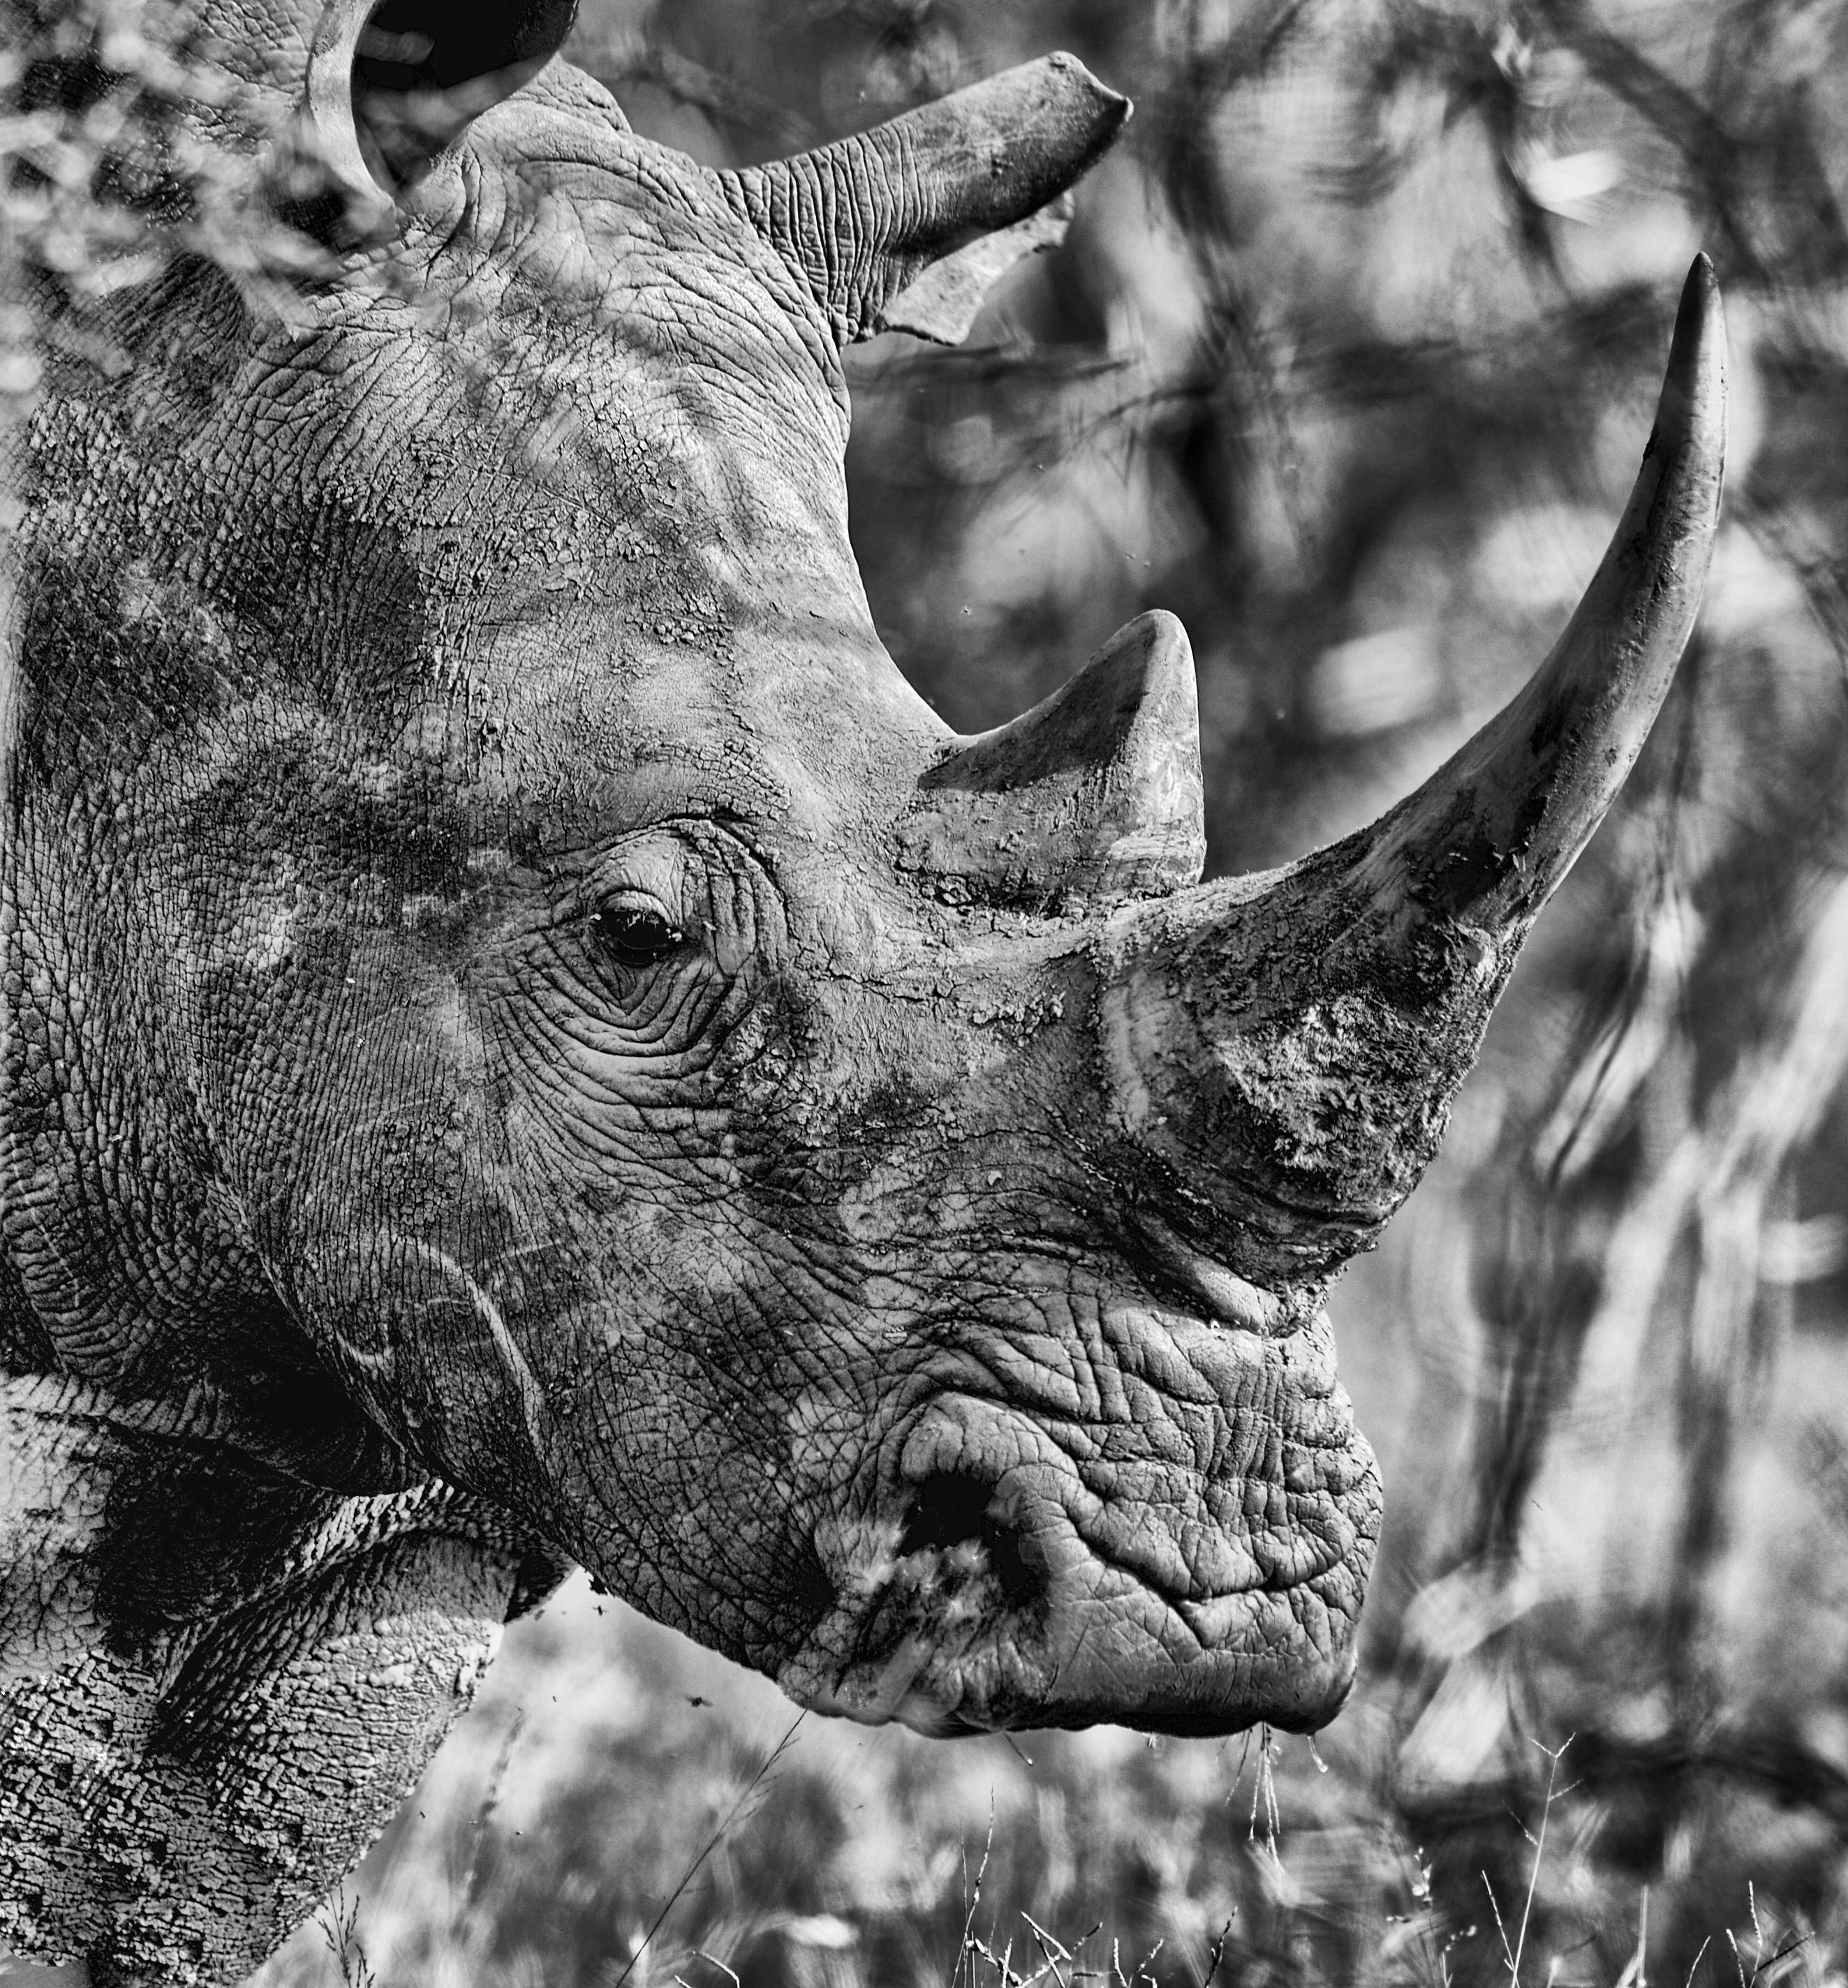 South Africa's Environmental Minister Edna Molewa: Plan to sell rhino horn and wildlife